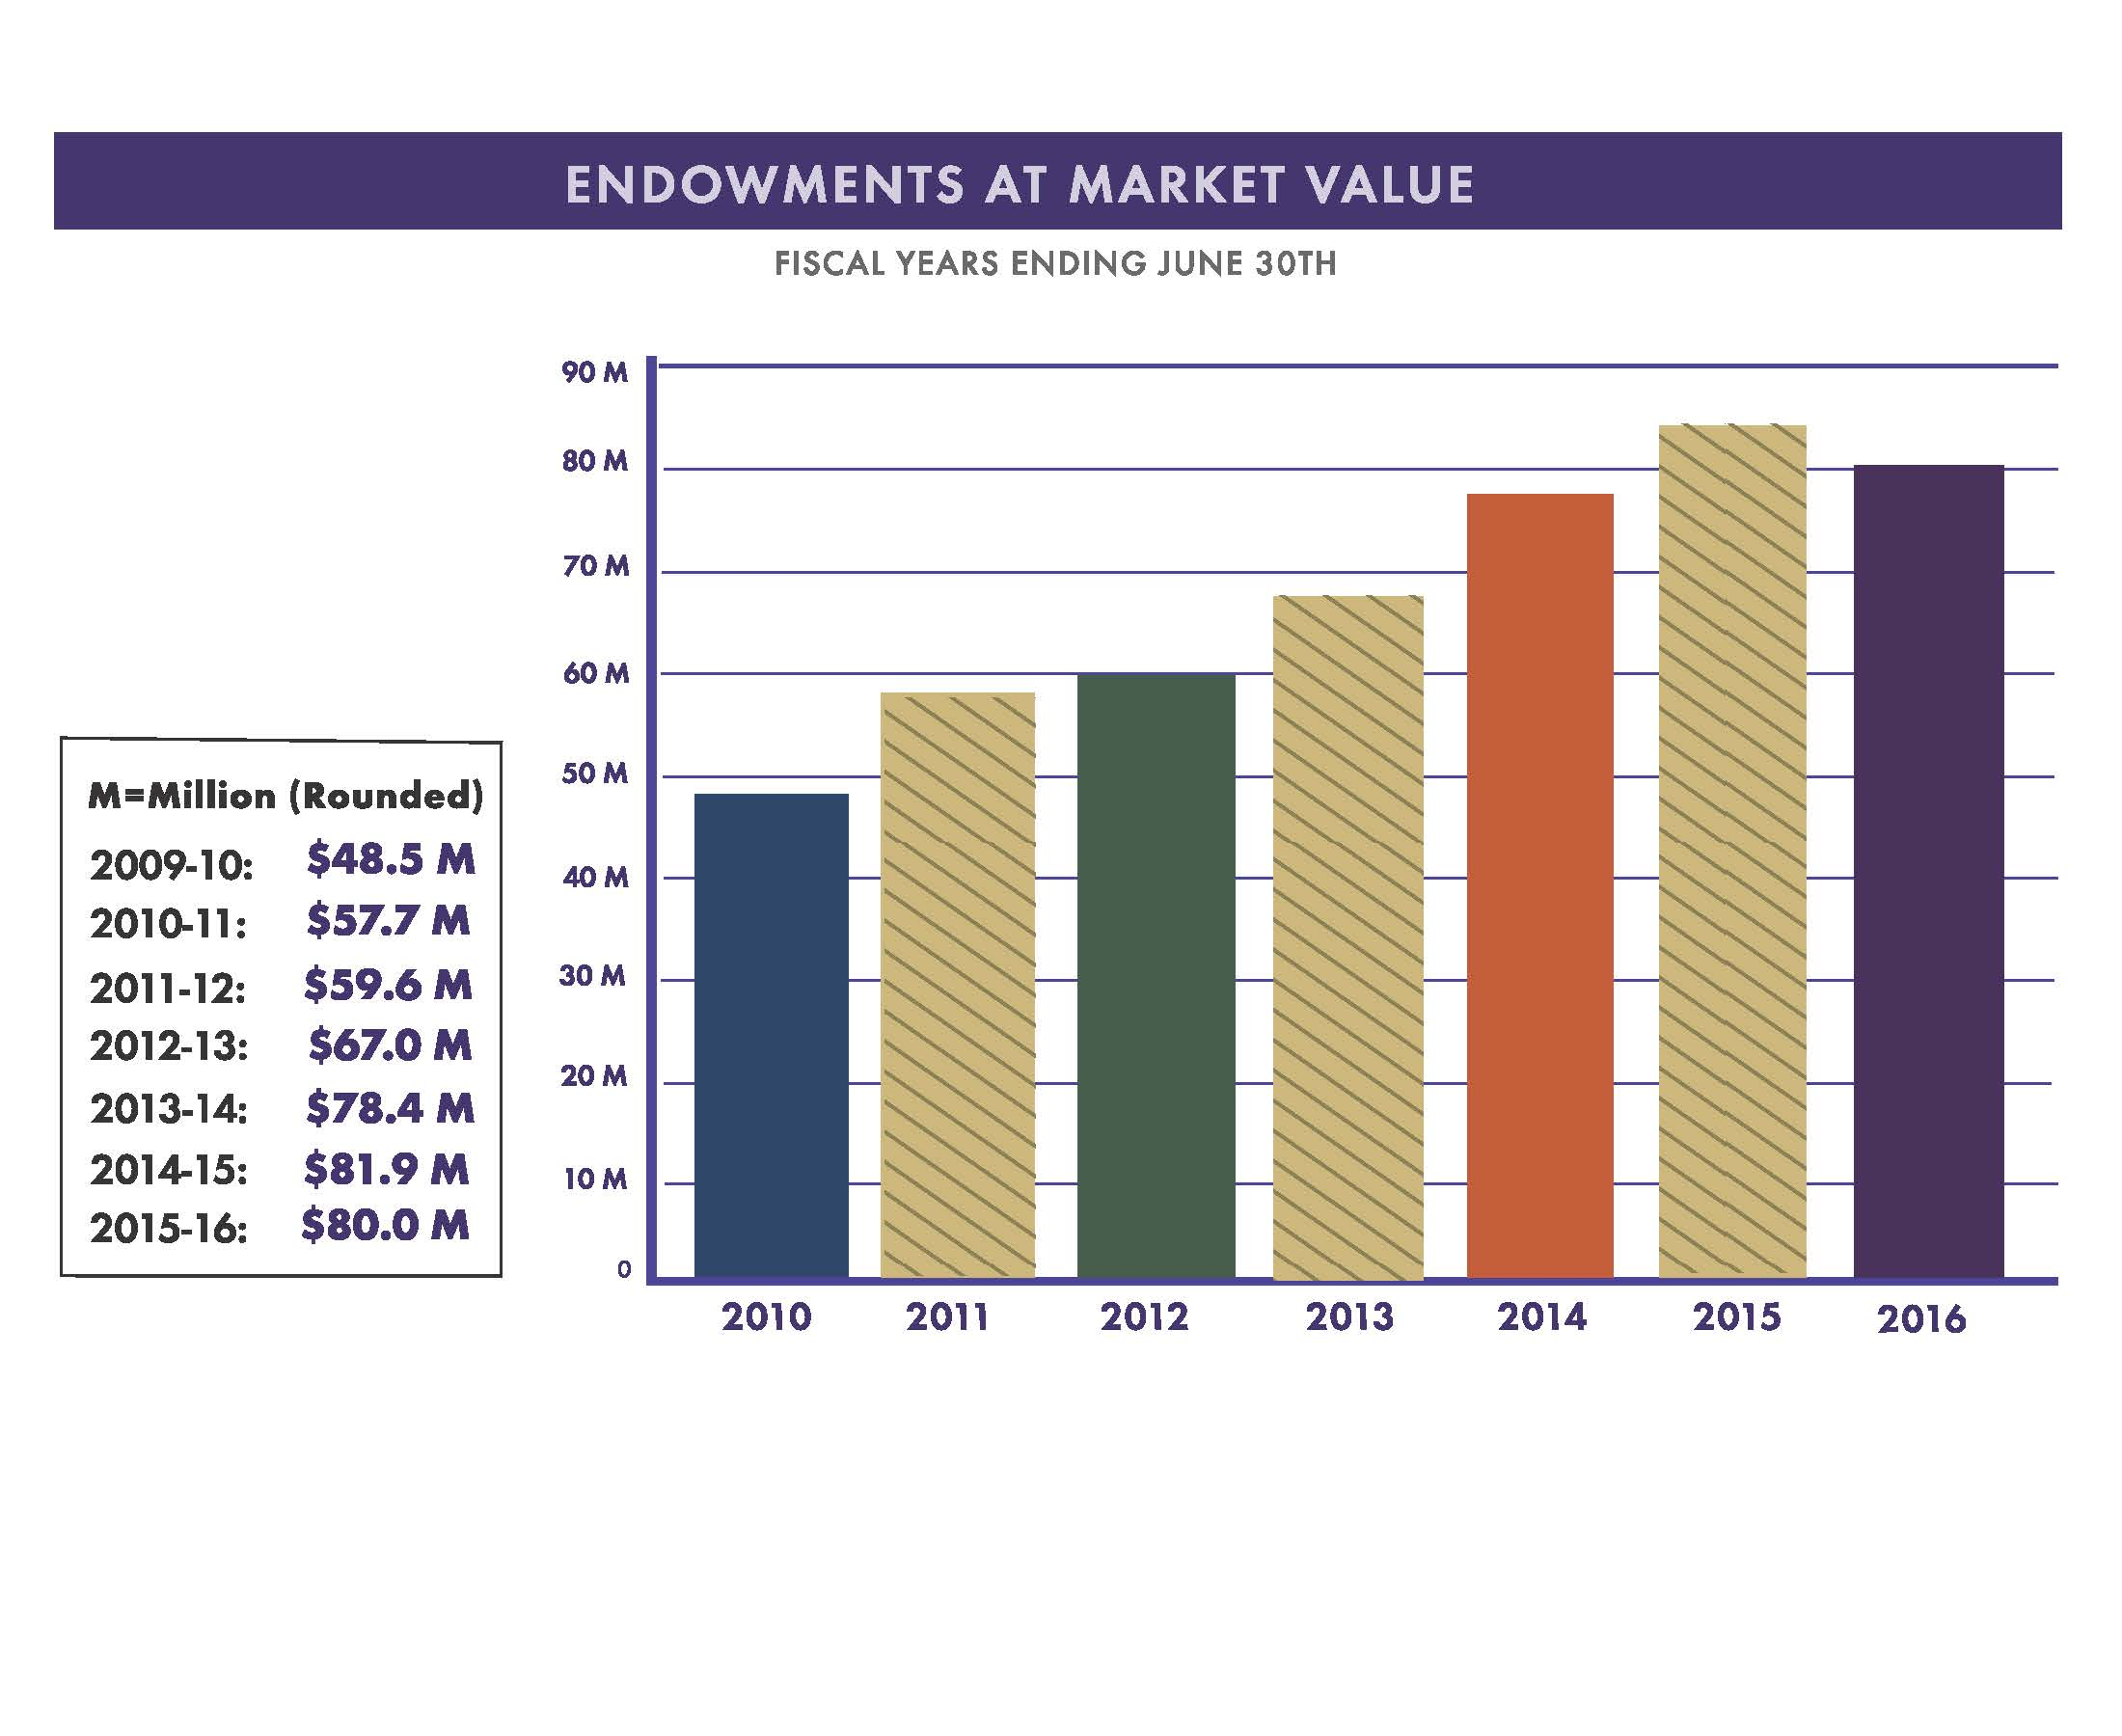 Graph of Endowments @ Mkt Value